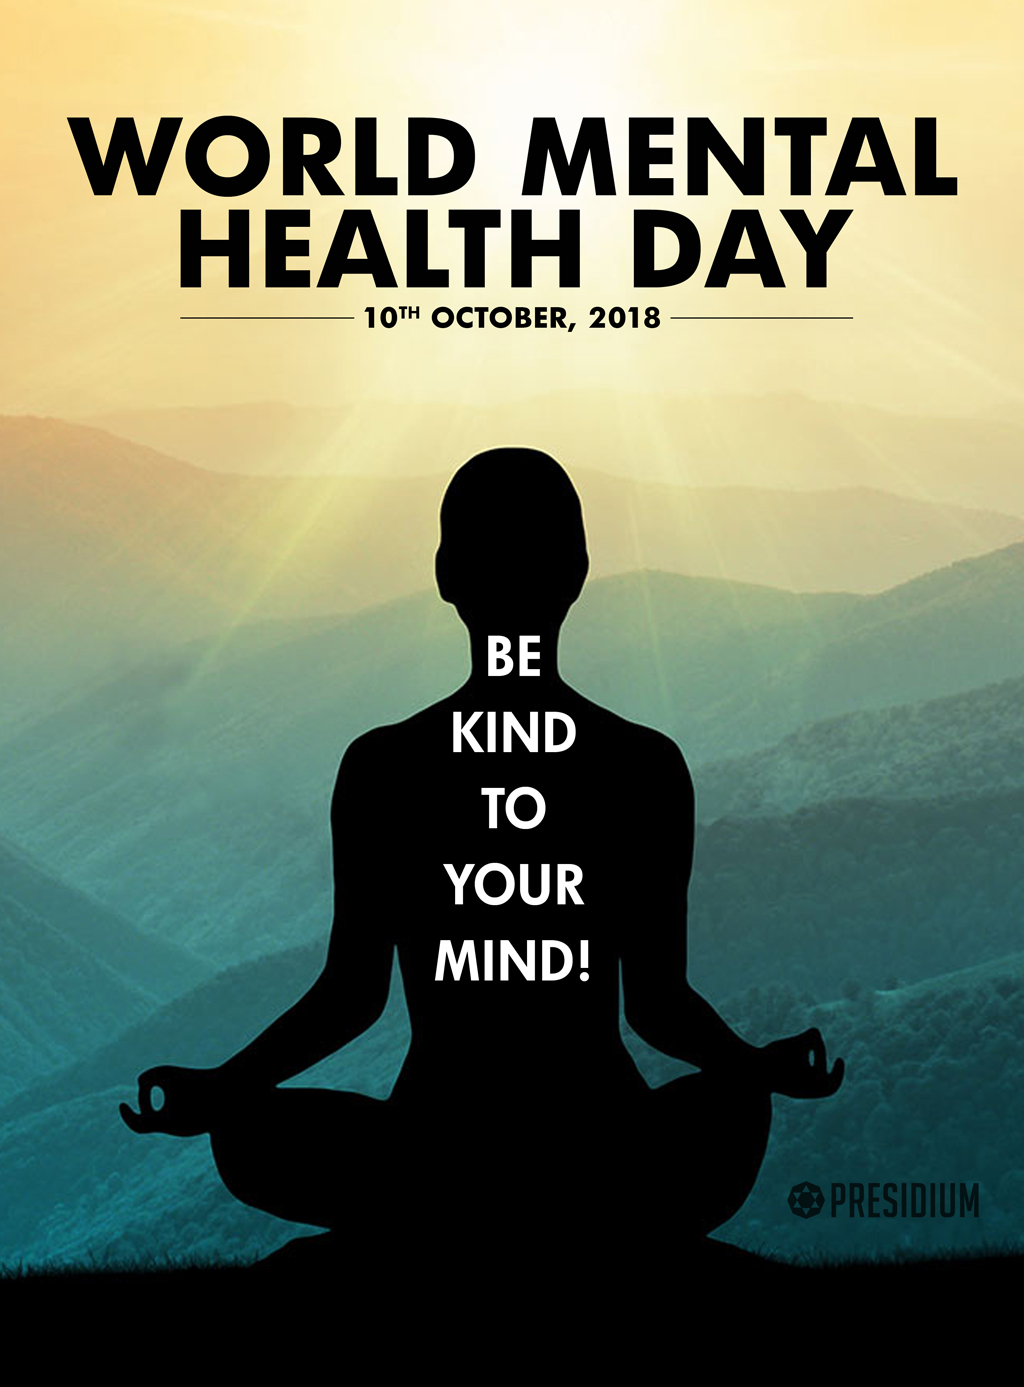 WORLD MENTAL HEALTH DAY: GOOD HEALTH BEGINS WITH THE MIND!